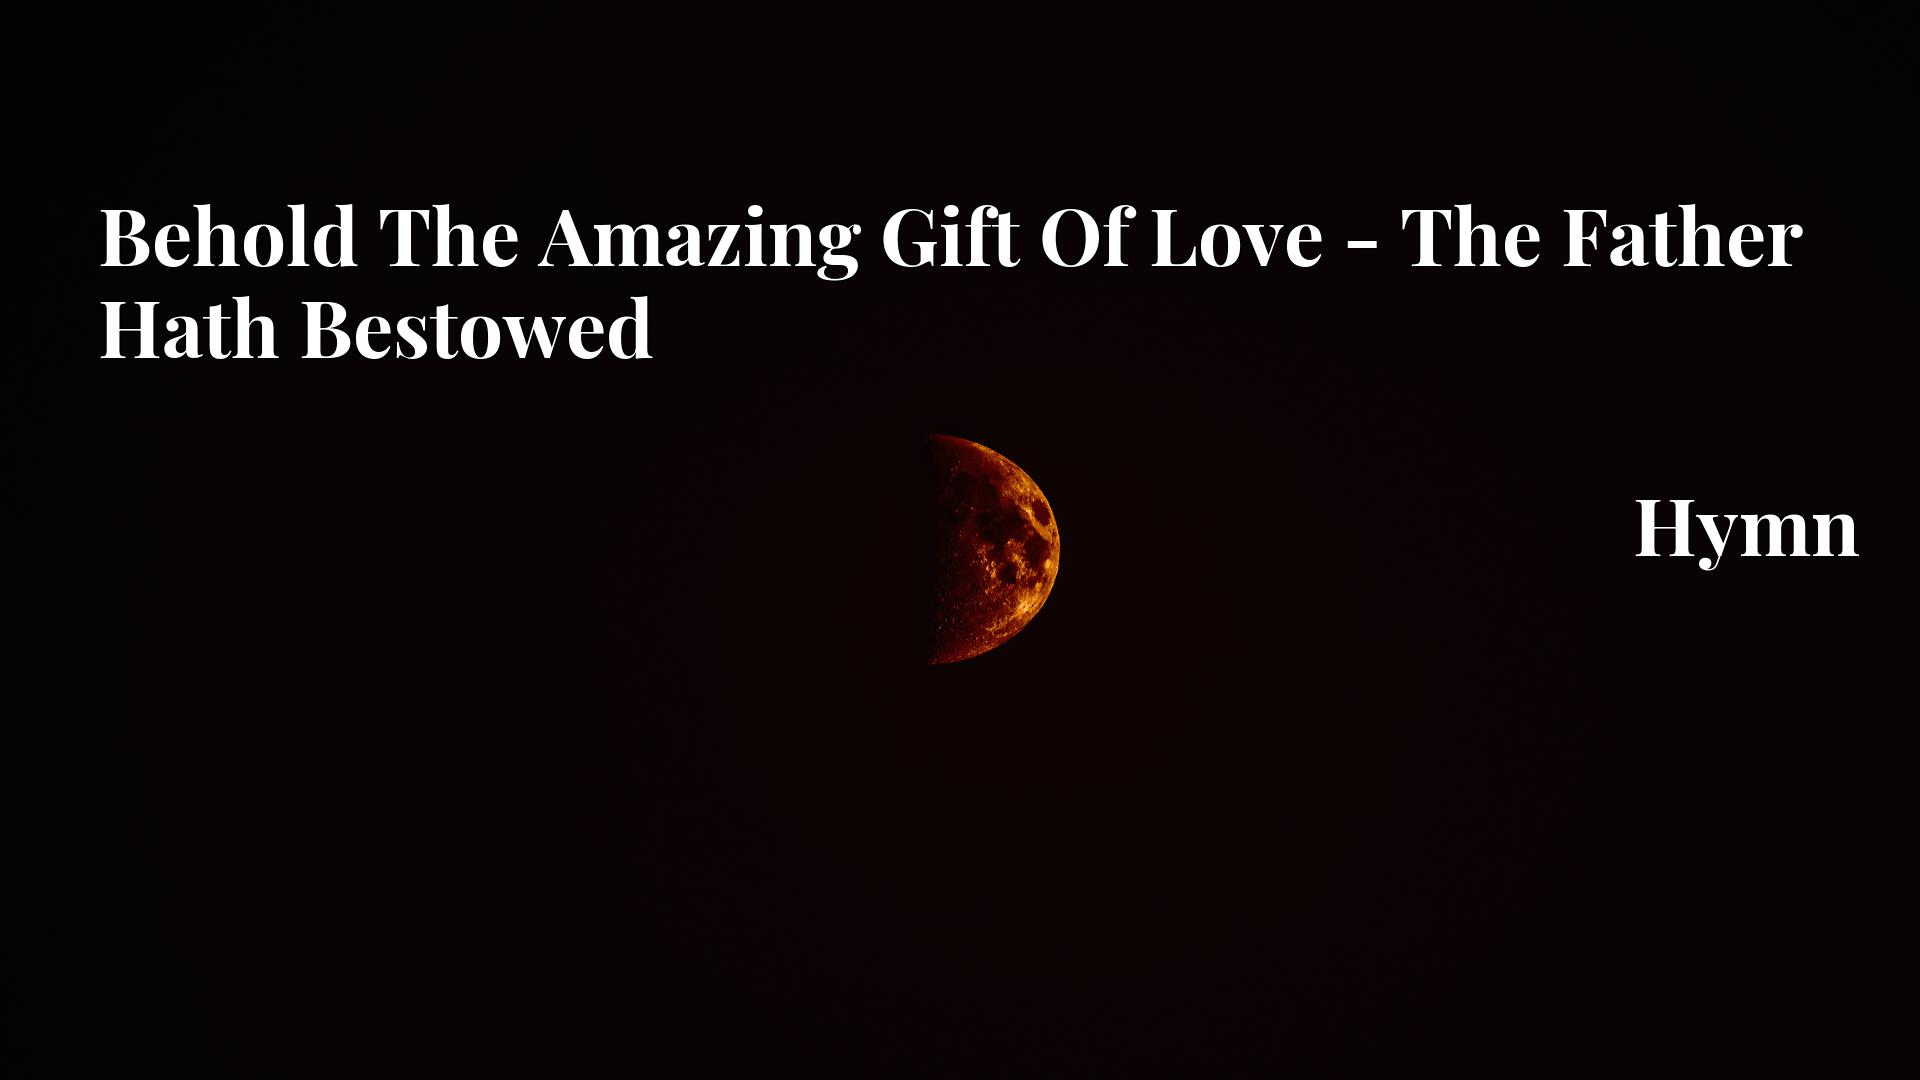 Behold The Amazing Gift Of Love - The Father Hath Bestowed - Hymn